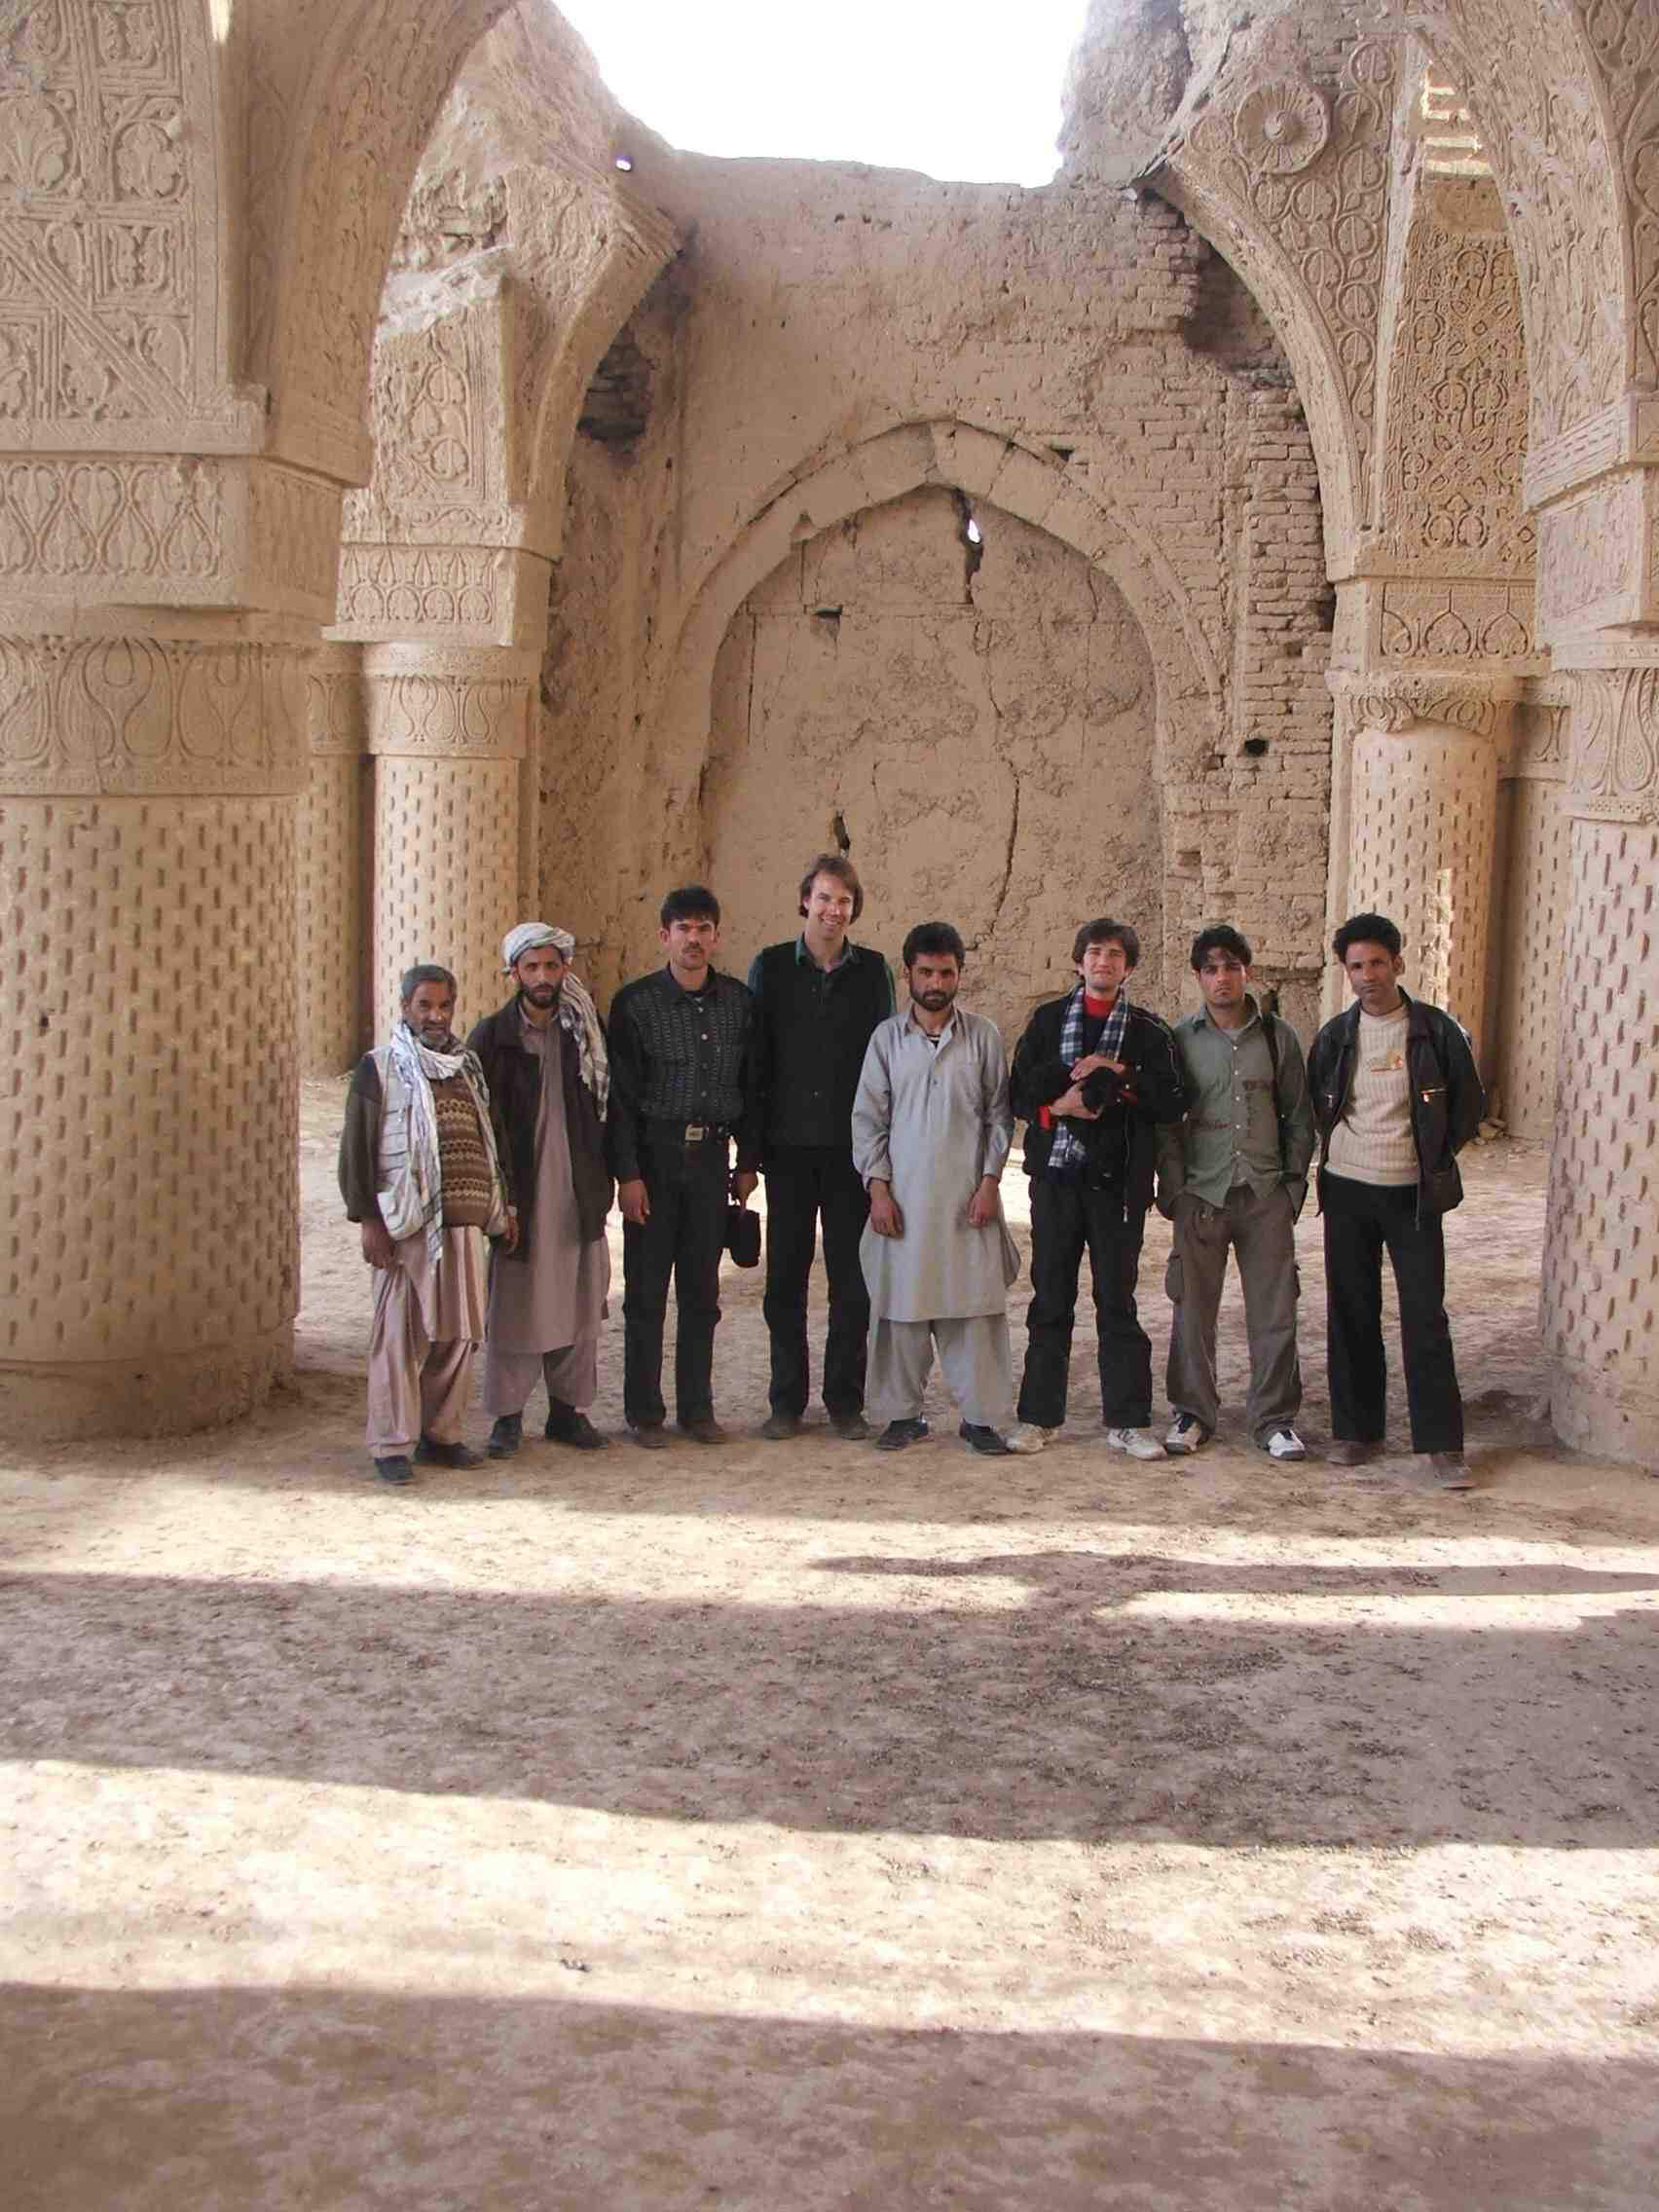 Feenstra (fourth from left) with his team 15 years ago at the 9th century Haji Piyada in Balkh, Afghanistan | Cross Border Conversations | Pradip Krishen X Prof. Anne Feenstra | STIR X LOCO Design